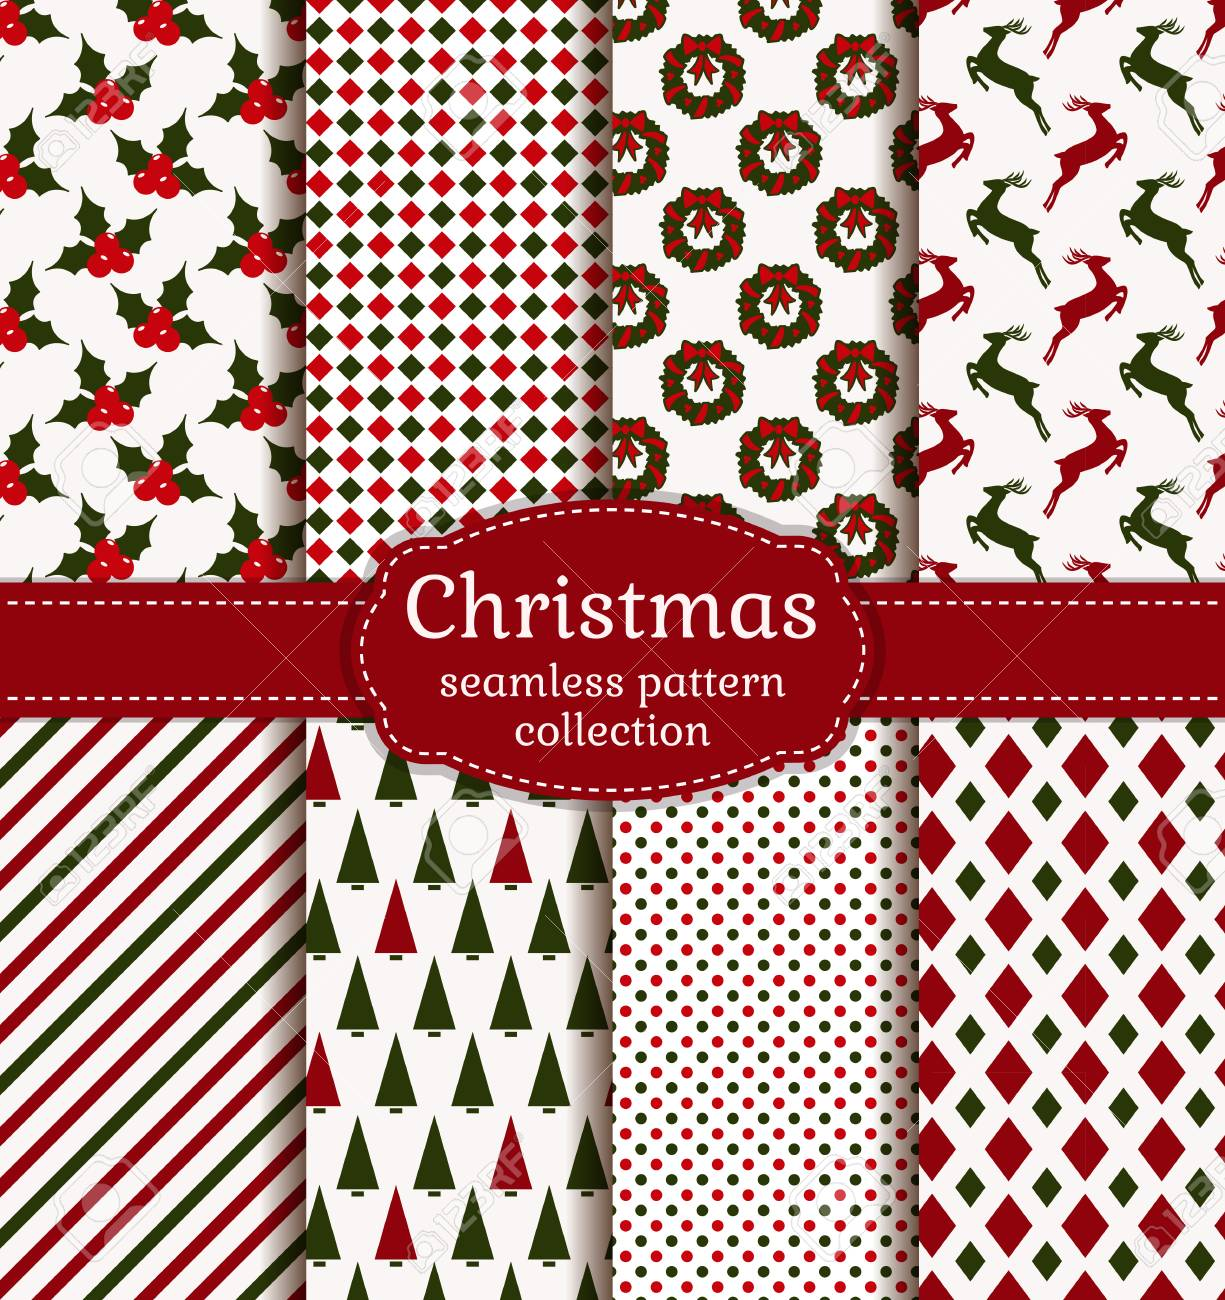 Merry Christmas and Happy New Year! Set of holiday backgrounds. Collection of seamless patterns with white, red and green colors. Vector illustration. - 49542016